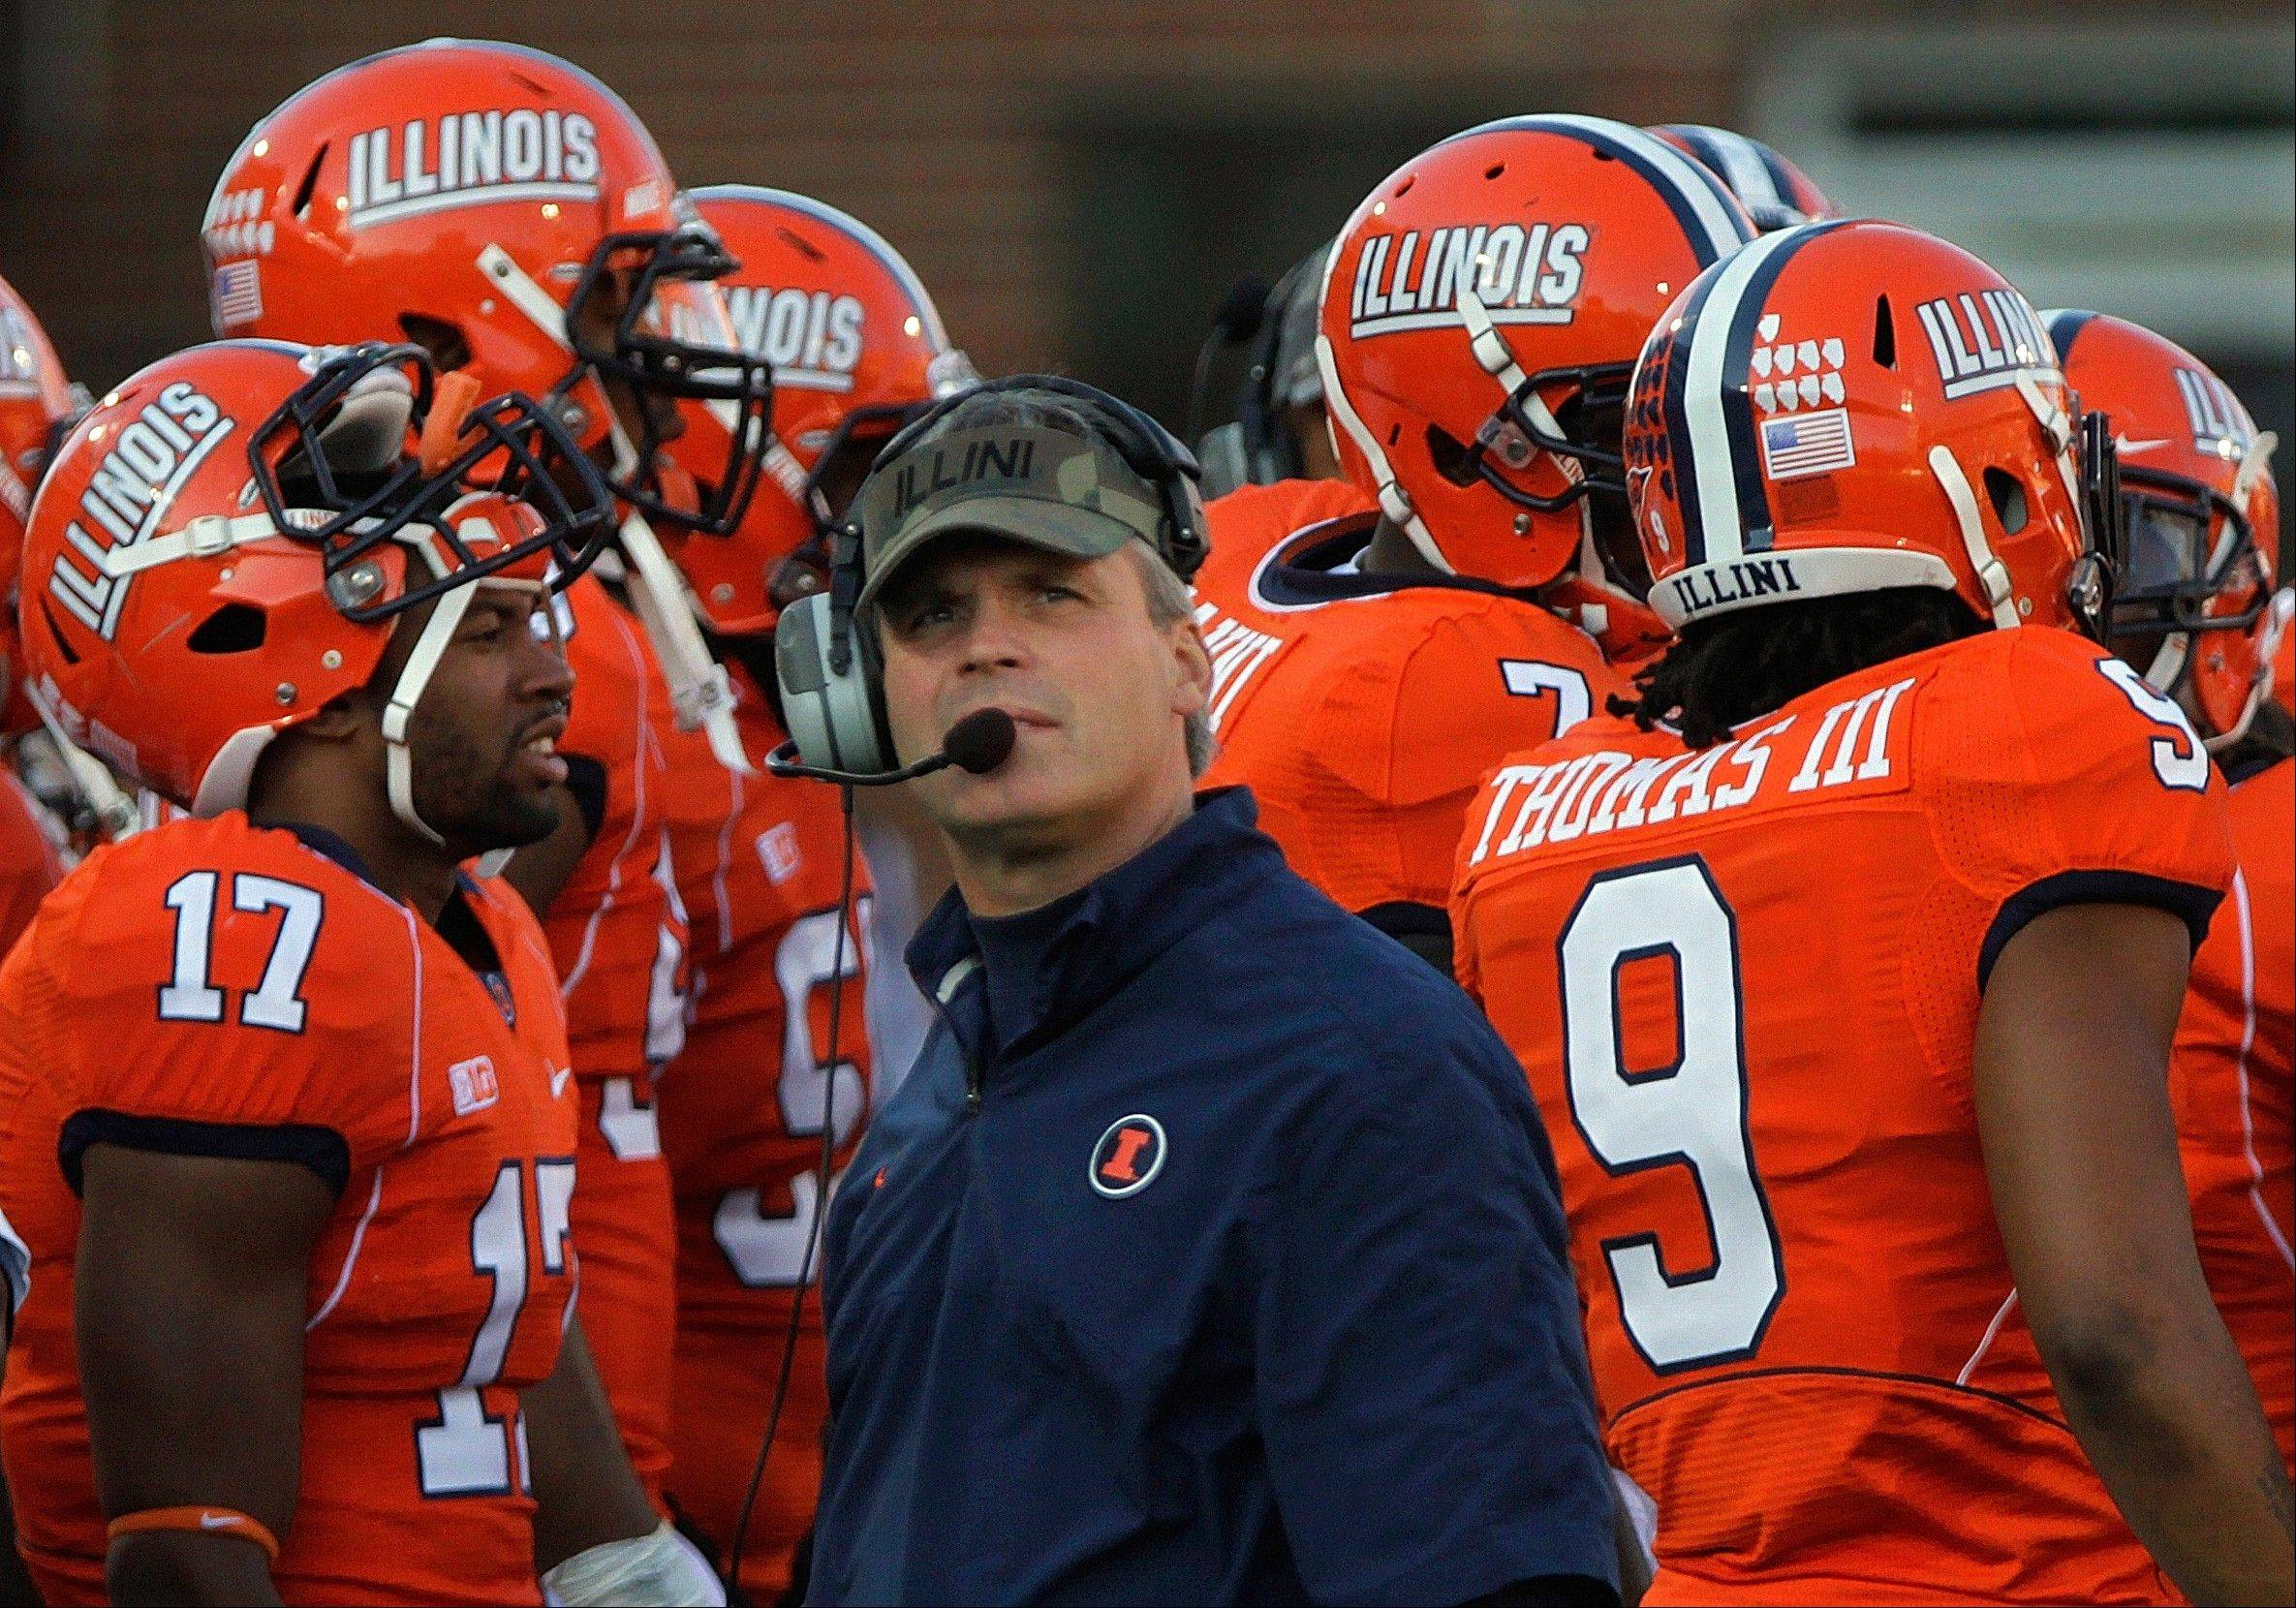 Illinois head coach Tim Beckman isn't happy with his team's woeful offense, and said there may be personnel changes this week.